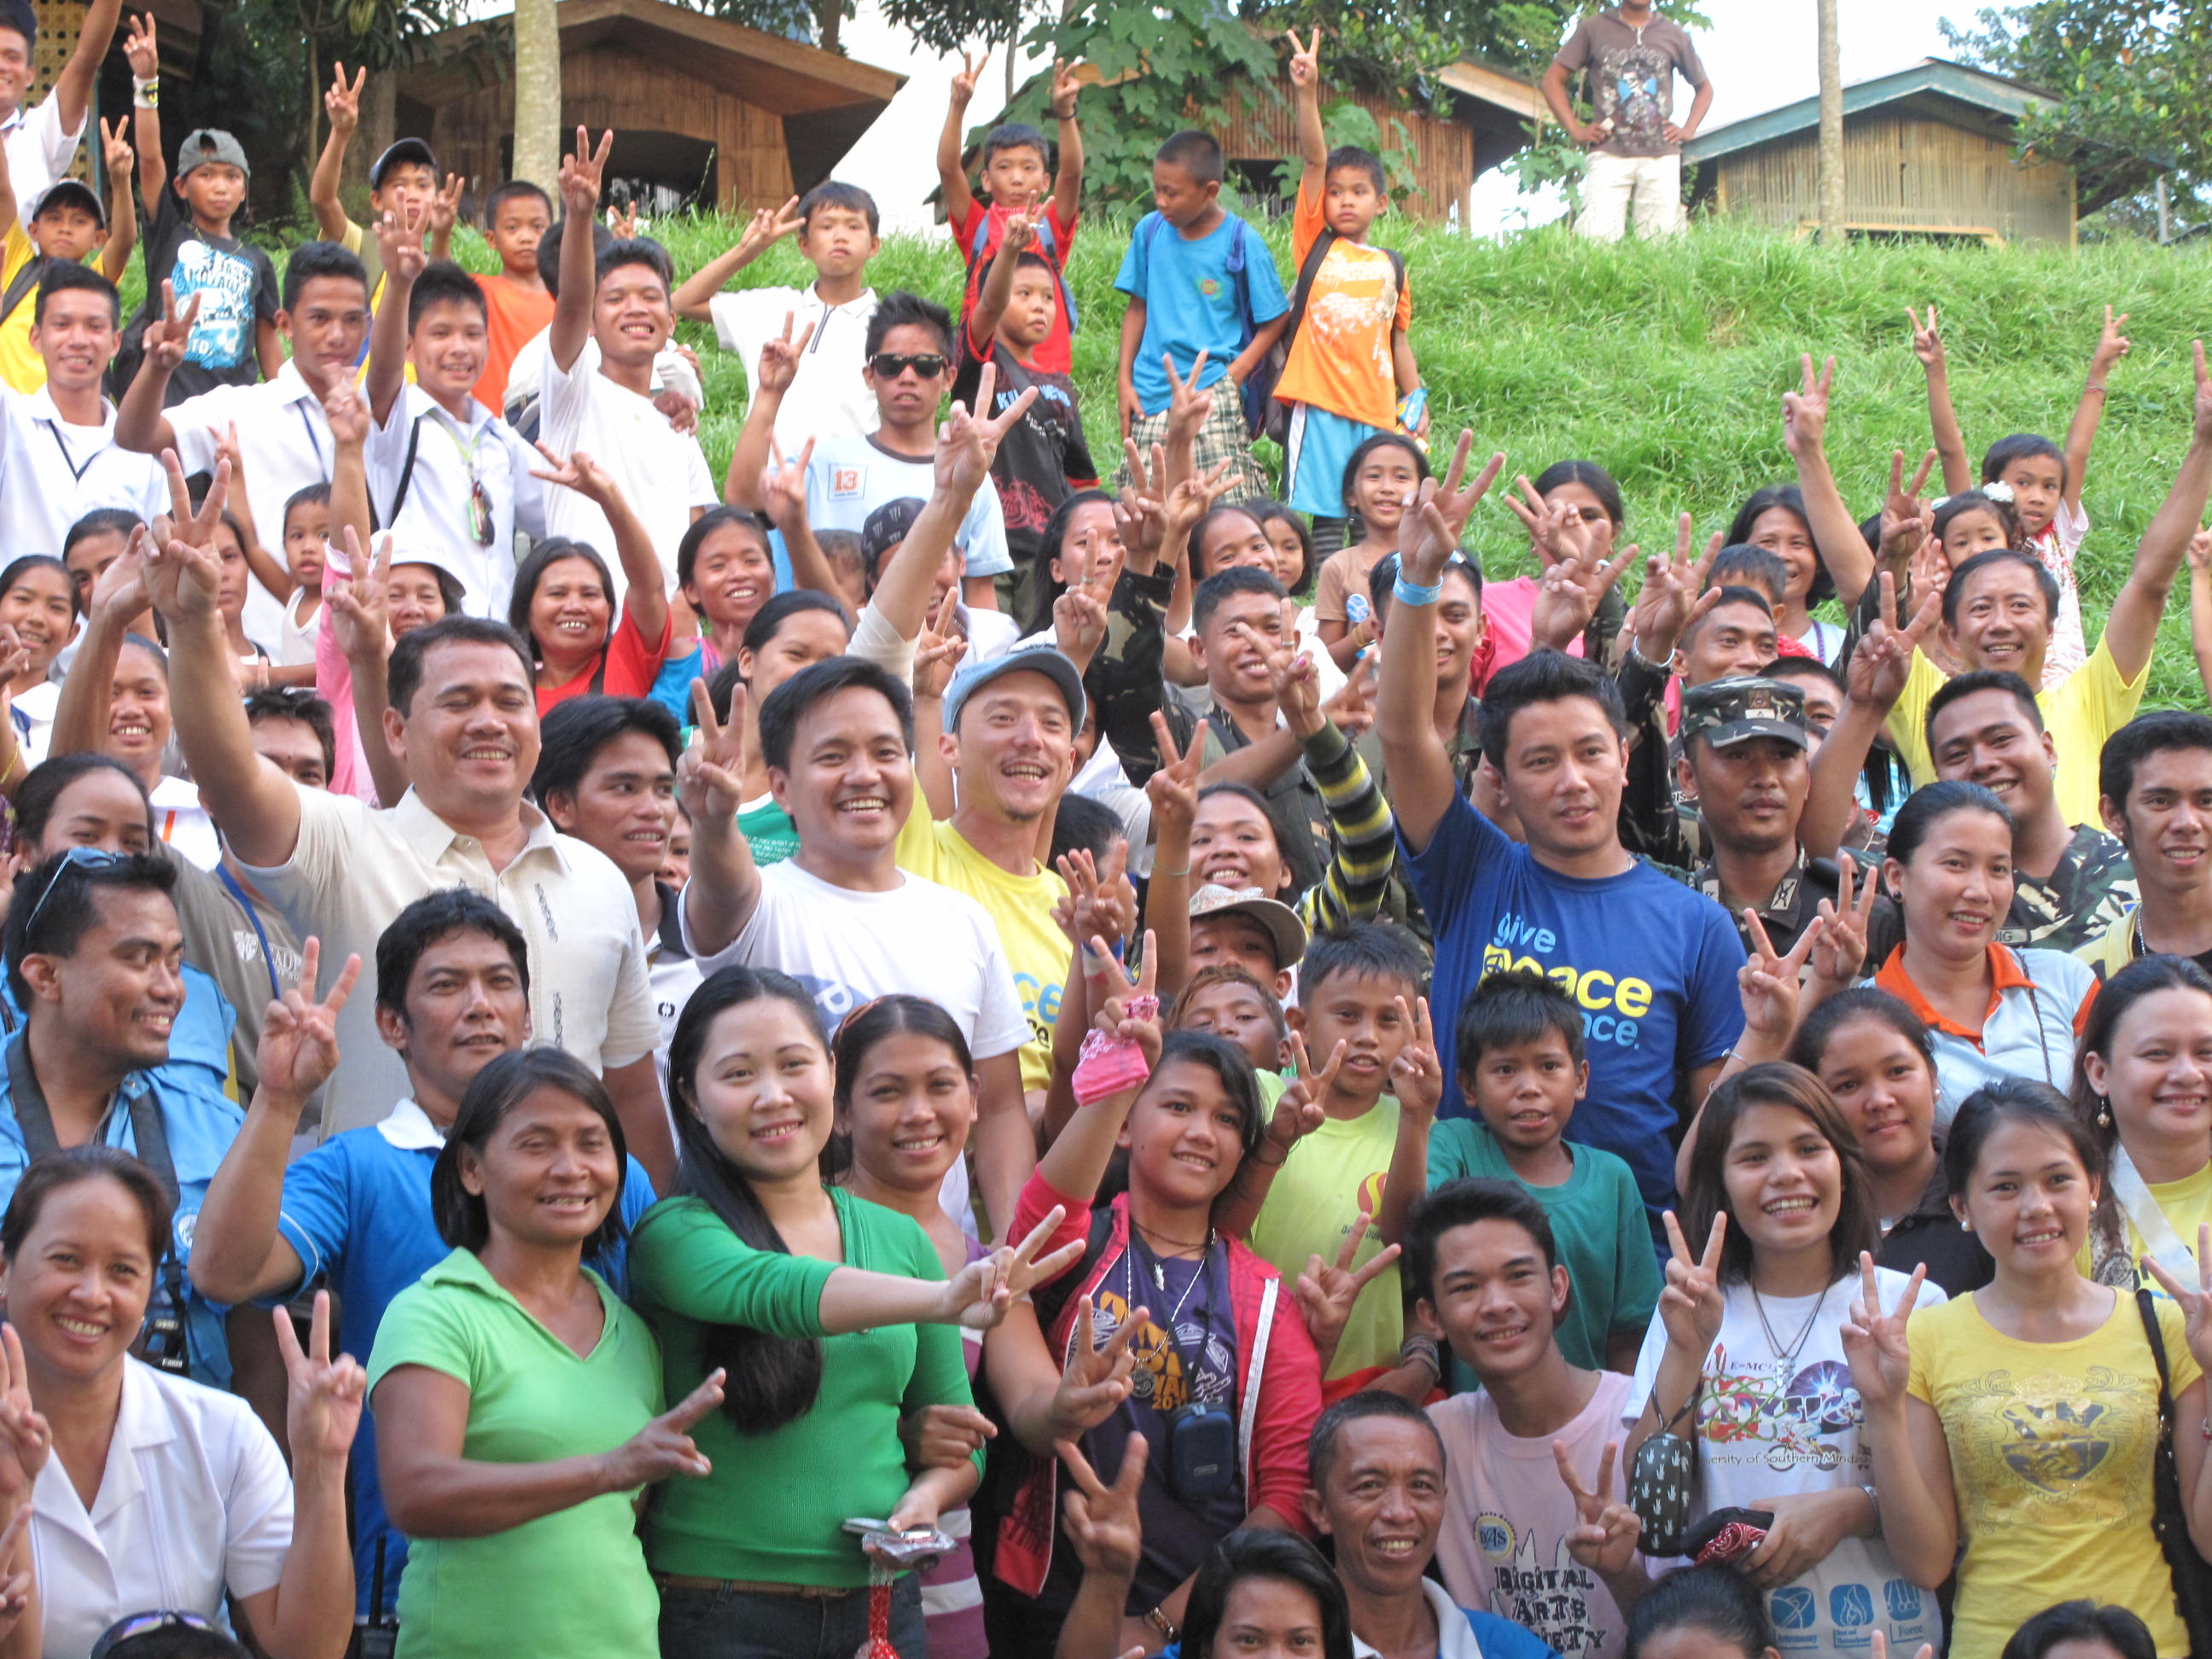 PEACE SIGN. Celebrity Peace Ambassadors visit Aleosan, North Cotabato in the first of a series of immersion activities organized by the Office of the President Adviser on the Peace Process. Photo by Angela Casauay.